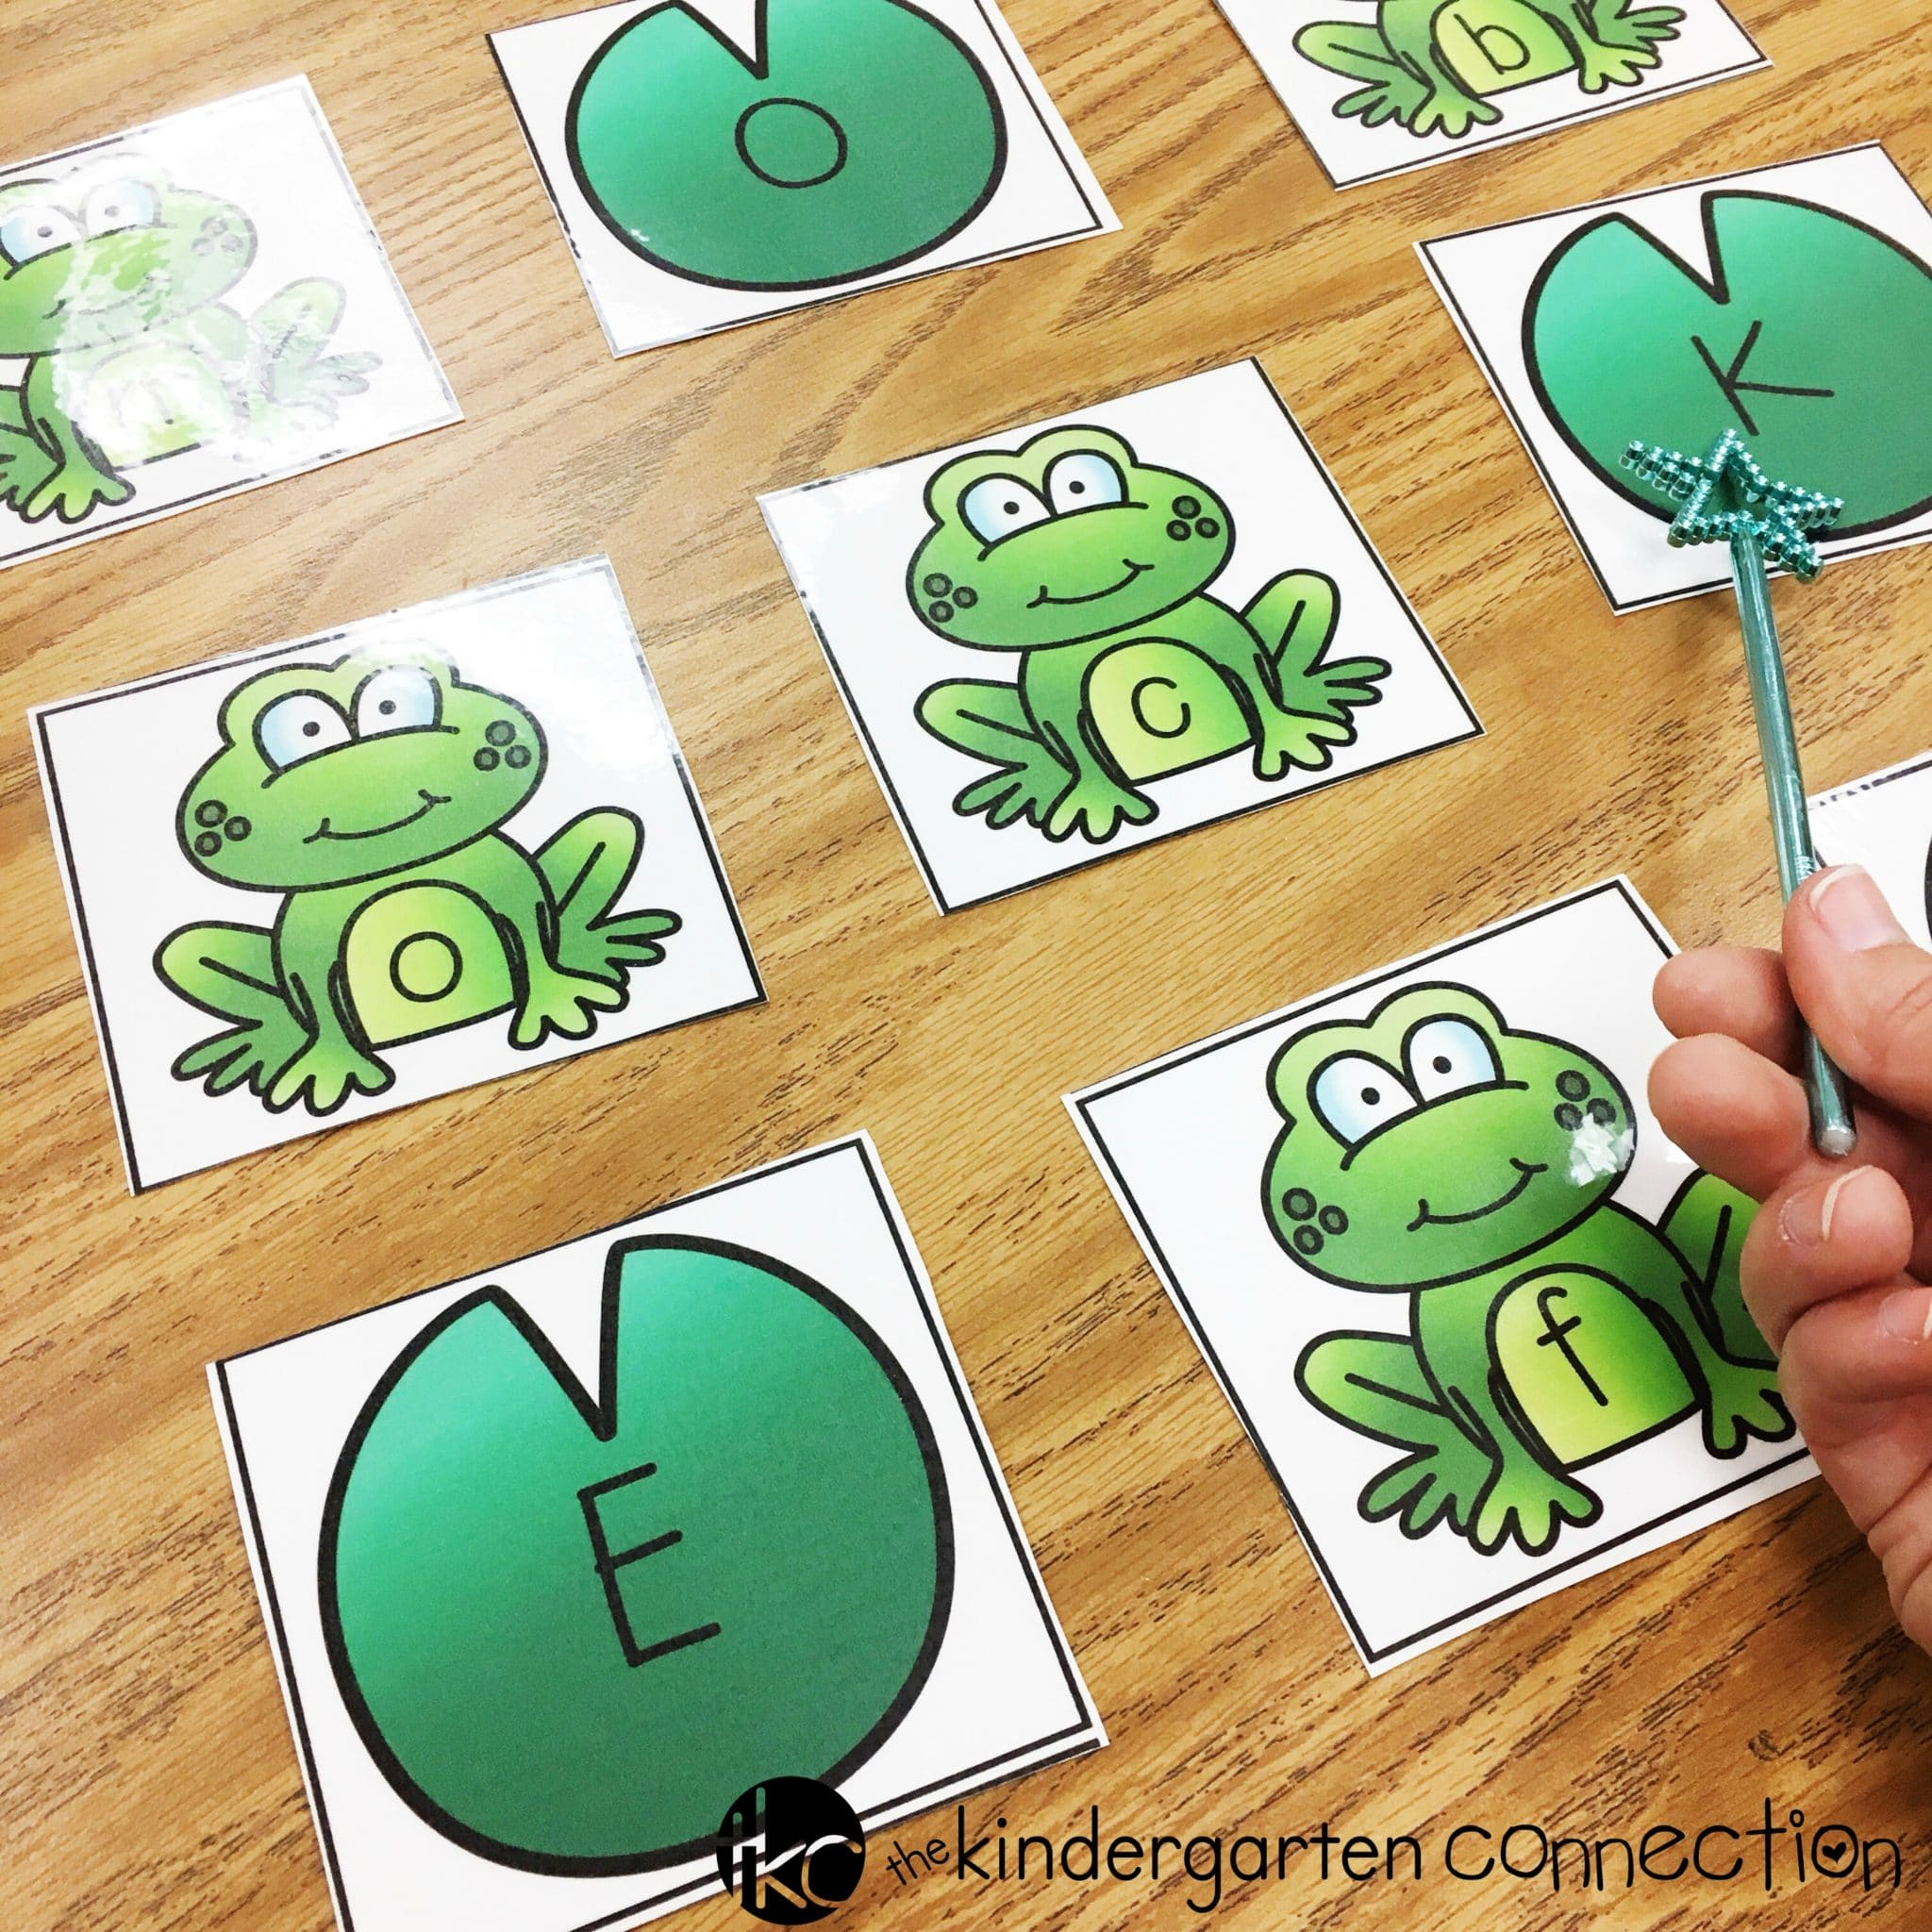 Frog letter activities - swat the letter with a wand!